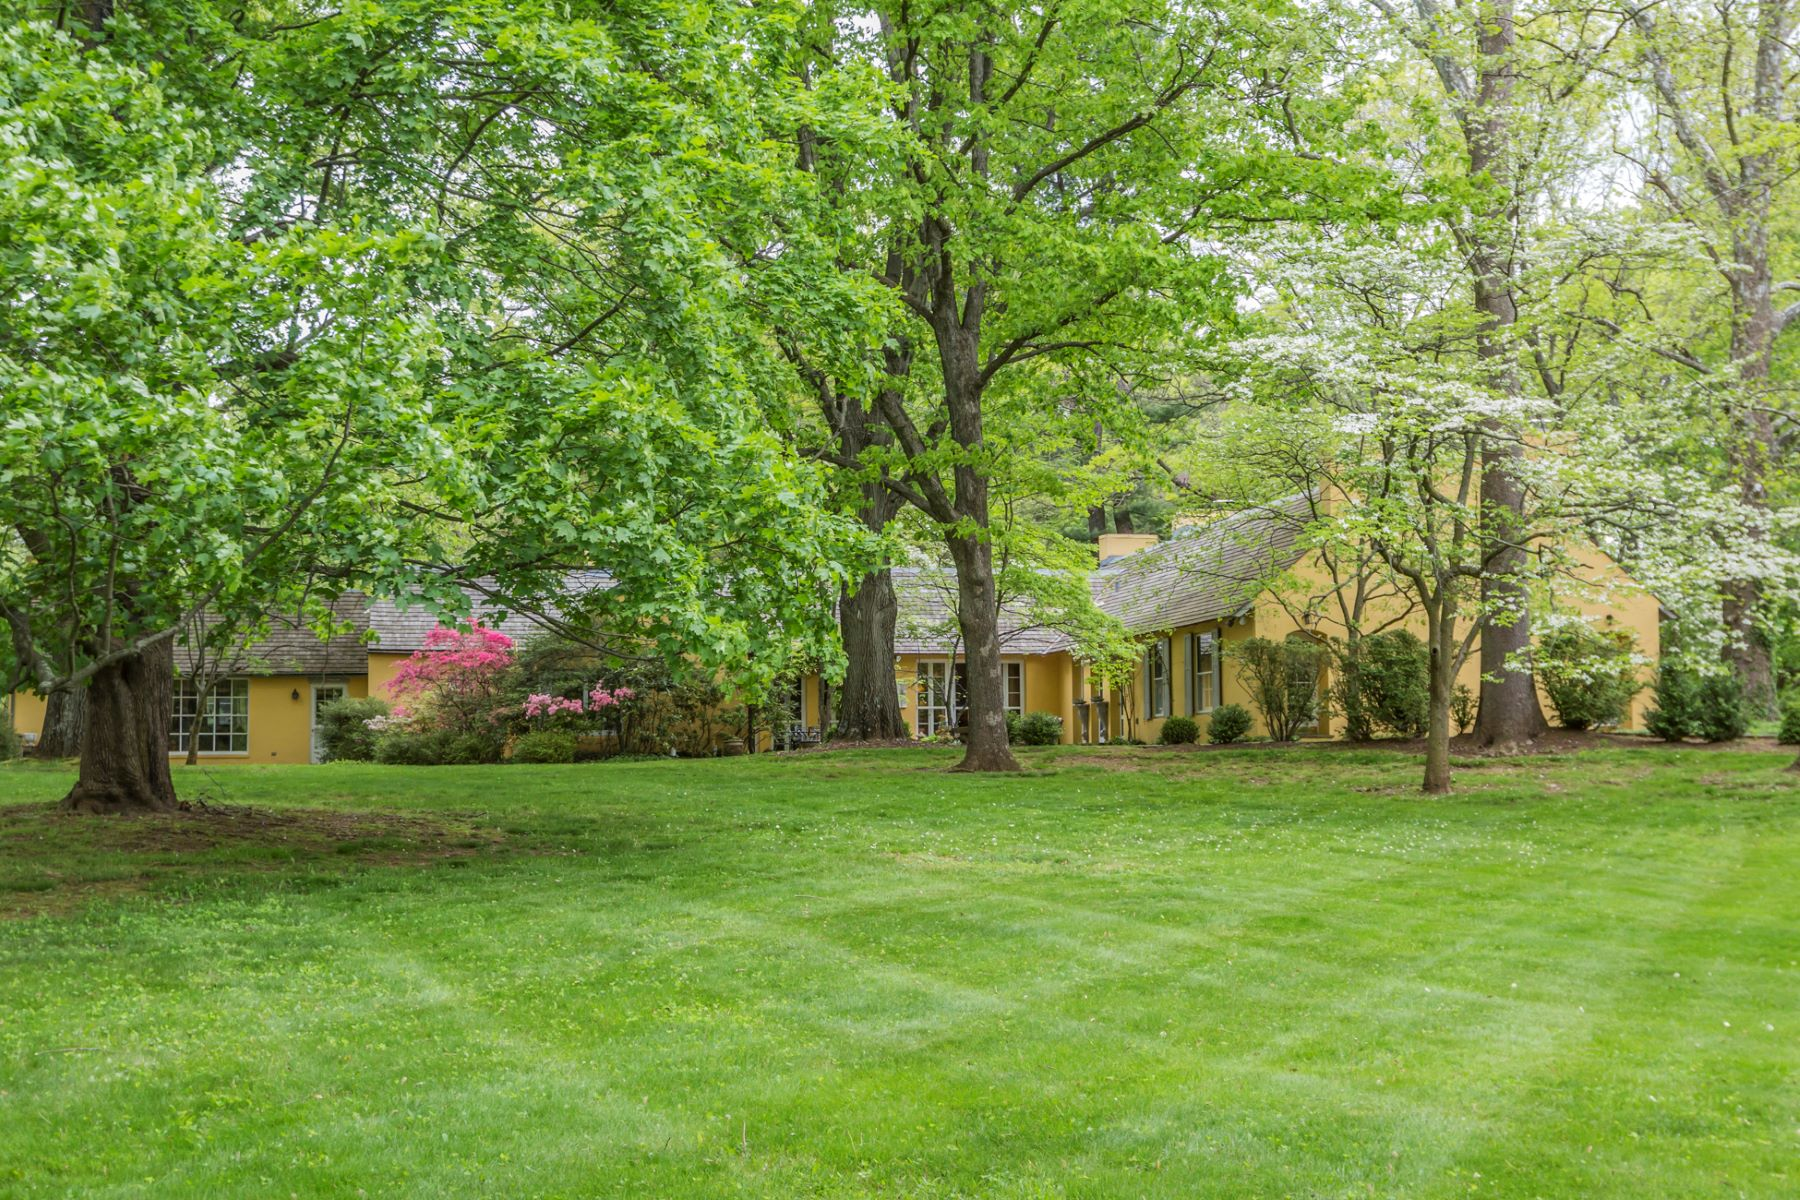 Secluded European Estate Setting  - Lawrence Township 44 Fackler Road, Princeton, New Jersey 08540 United States